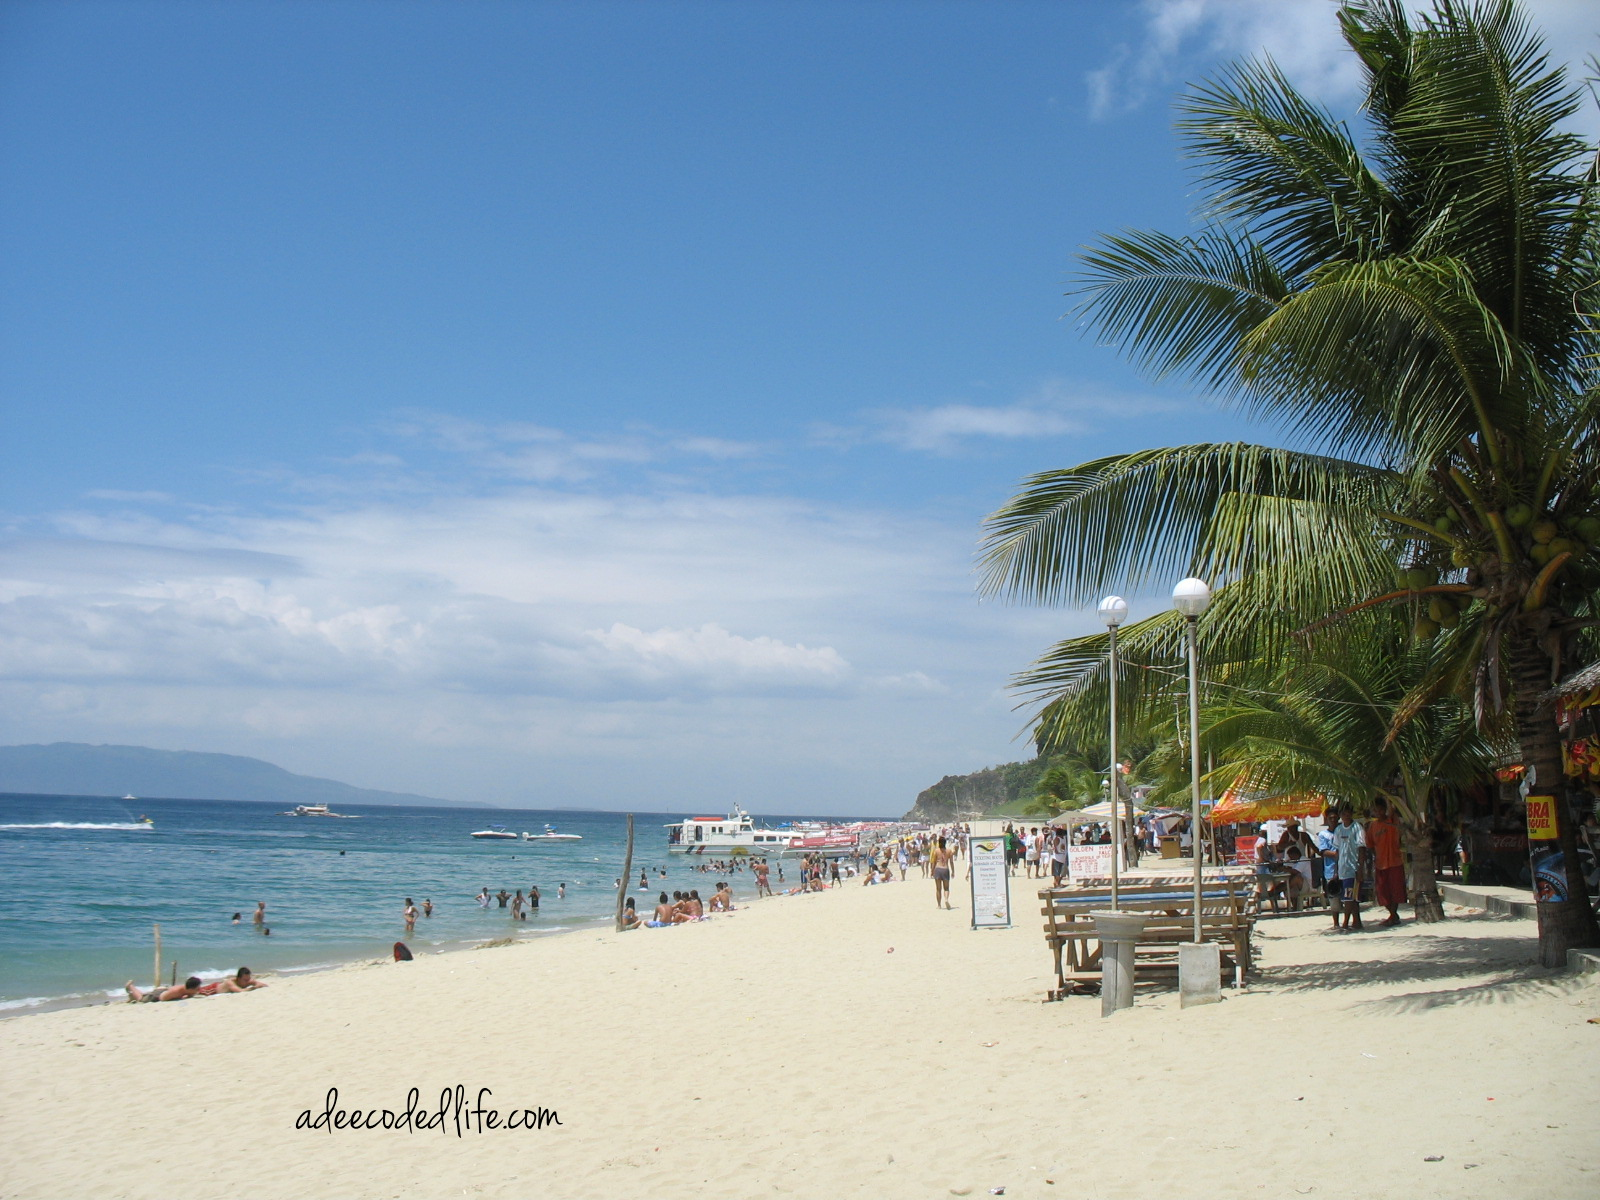 boracay versus puerto galera Answer 1 of 4: hi there, was planning to go boracay in may as part of my  then  maybe alona beach or puerto galera would meet your needs.